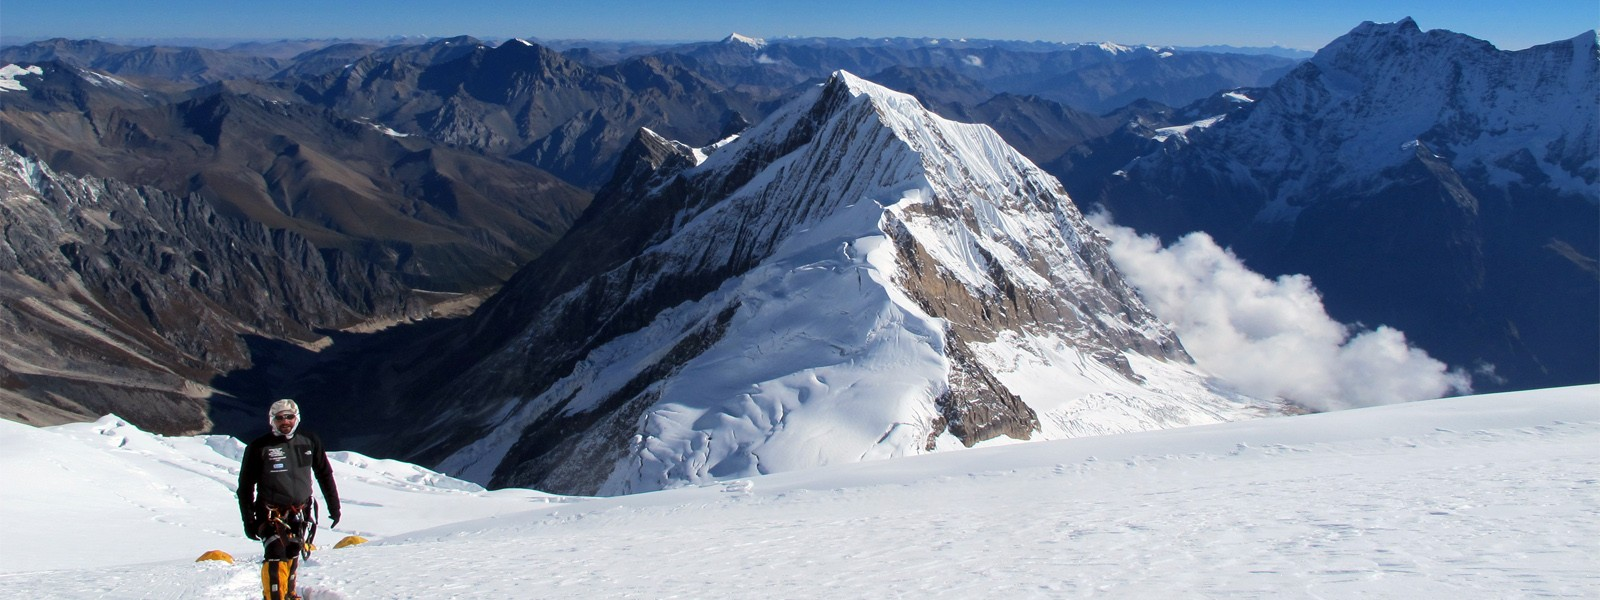 Mt. Manaslu Expedition Nepal